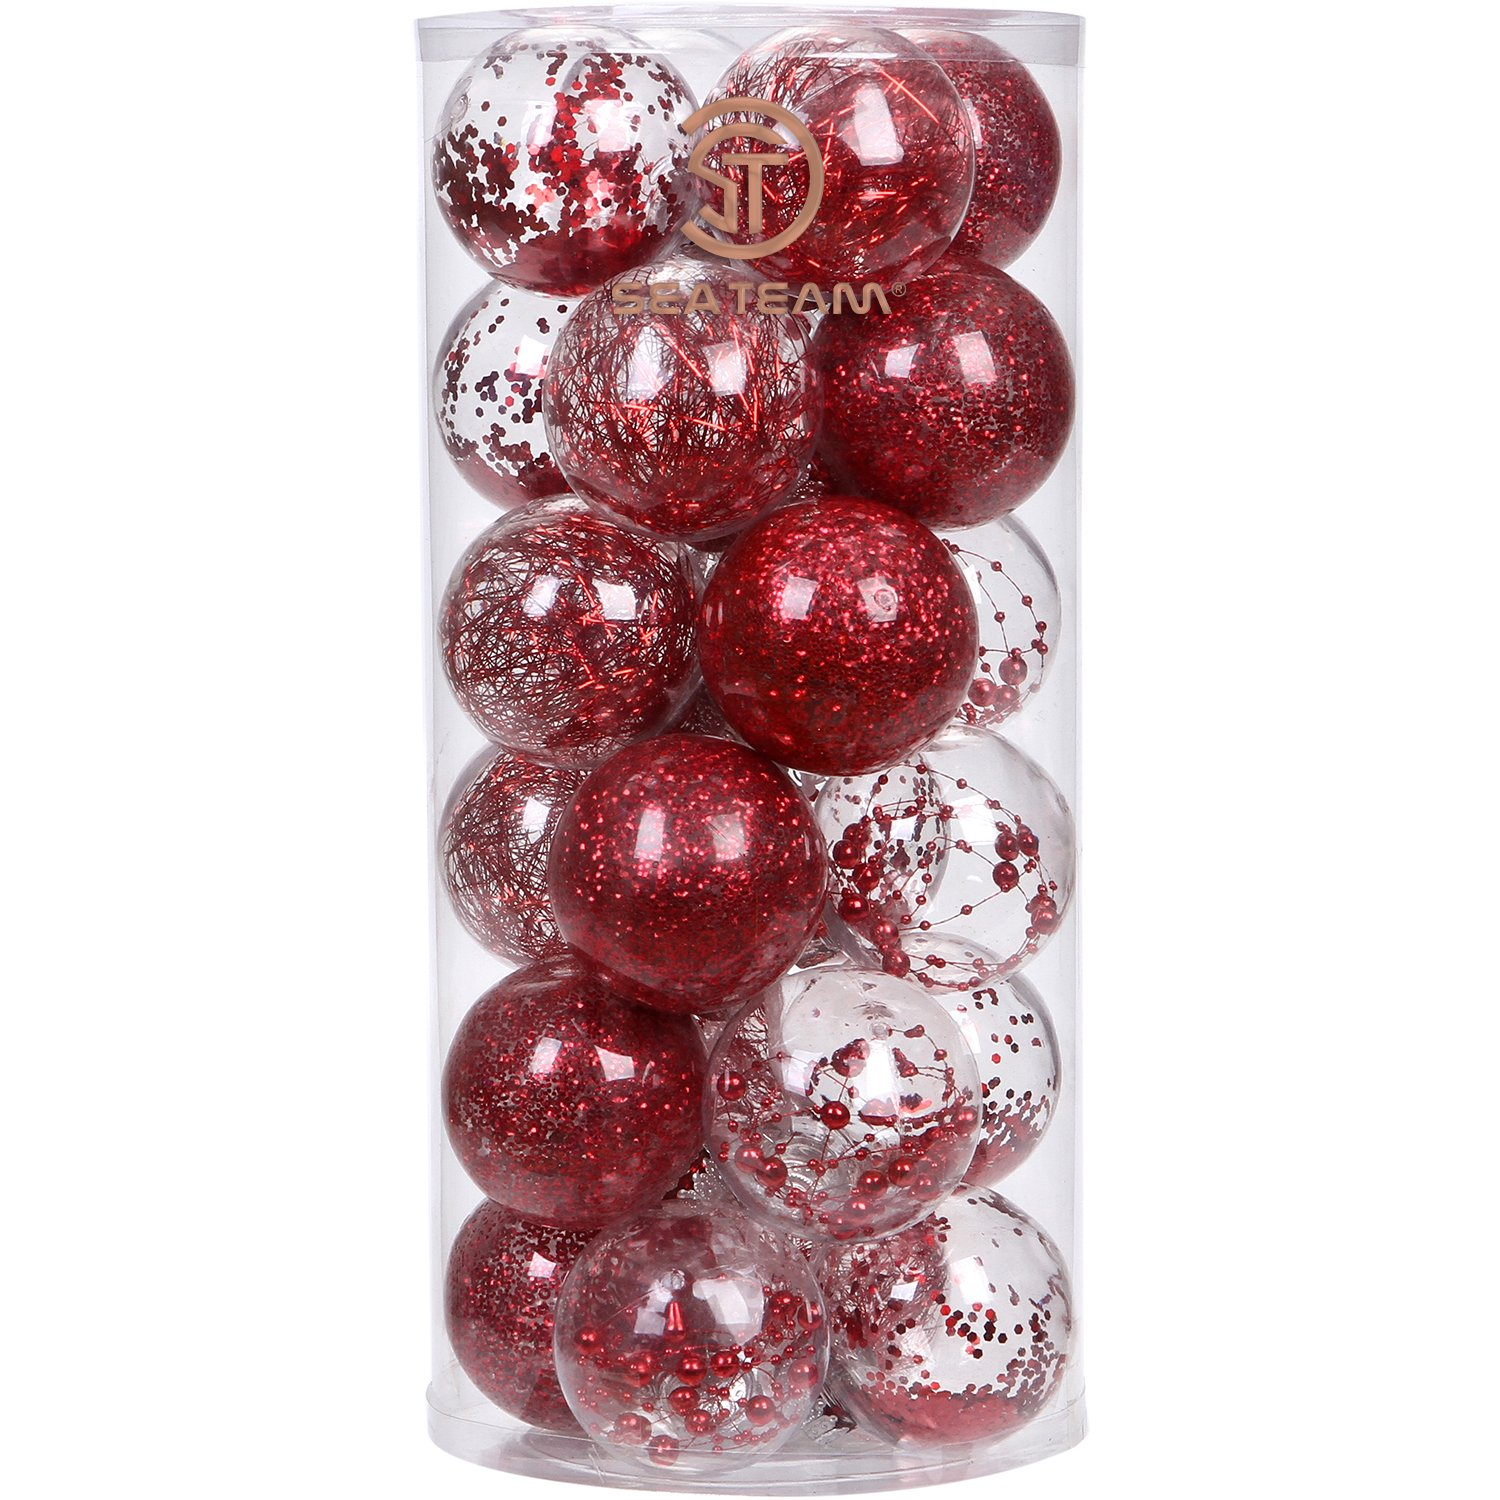 Sea Team 70mm/2.76'' Shatterproof Clear Plastic Christmas Ball Ornaments Decorative Xmas Balls Baubles Set with Stuffed Delicate Decorations (24 Counts, Red)